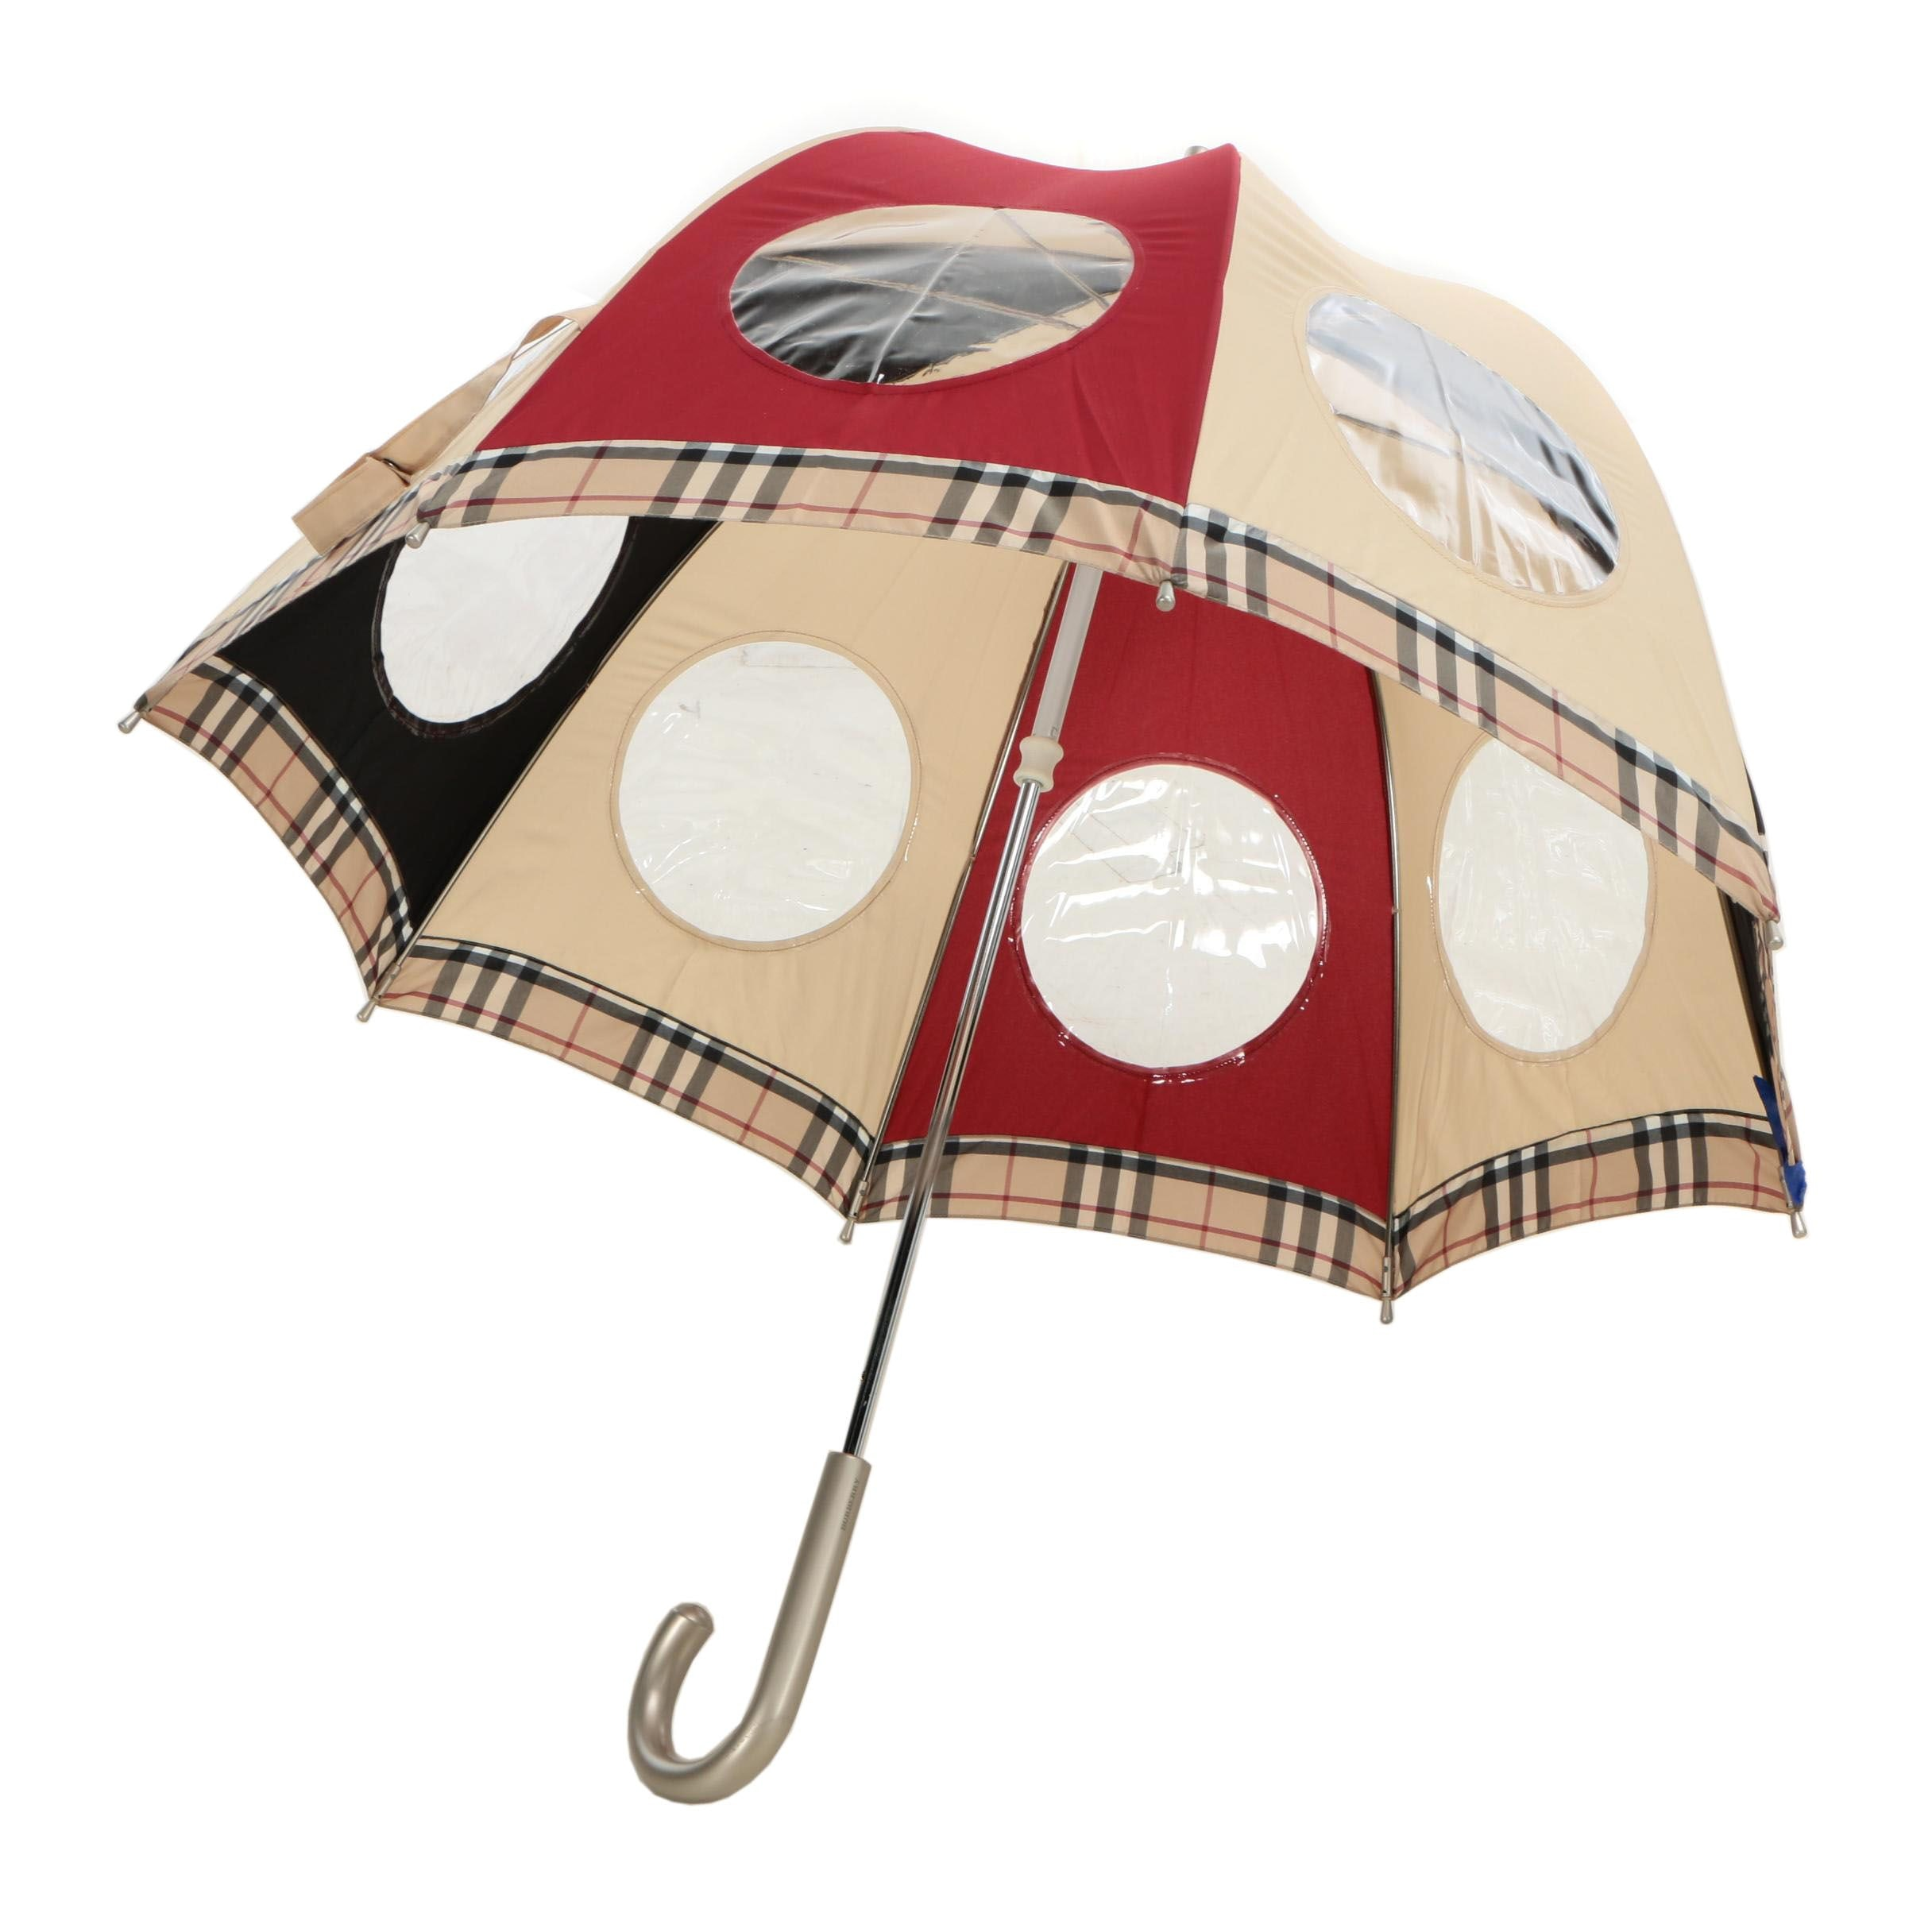 Burberry London Dome Umbrella with Vinyl Porthole Windows